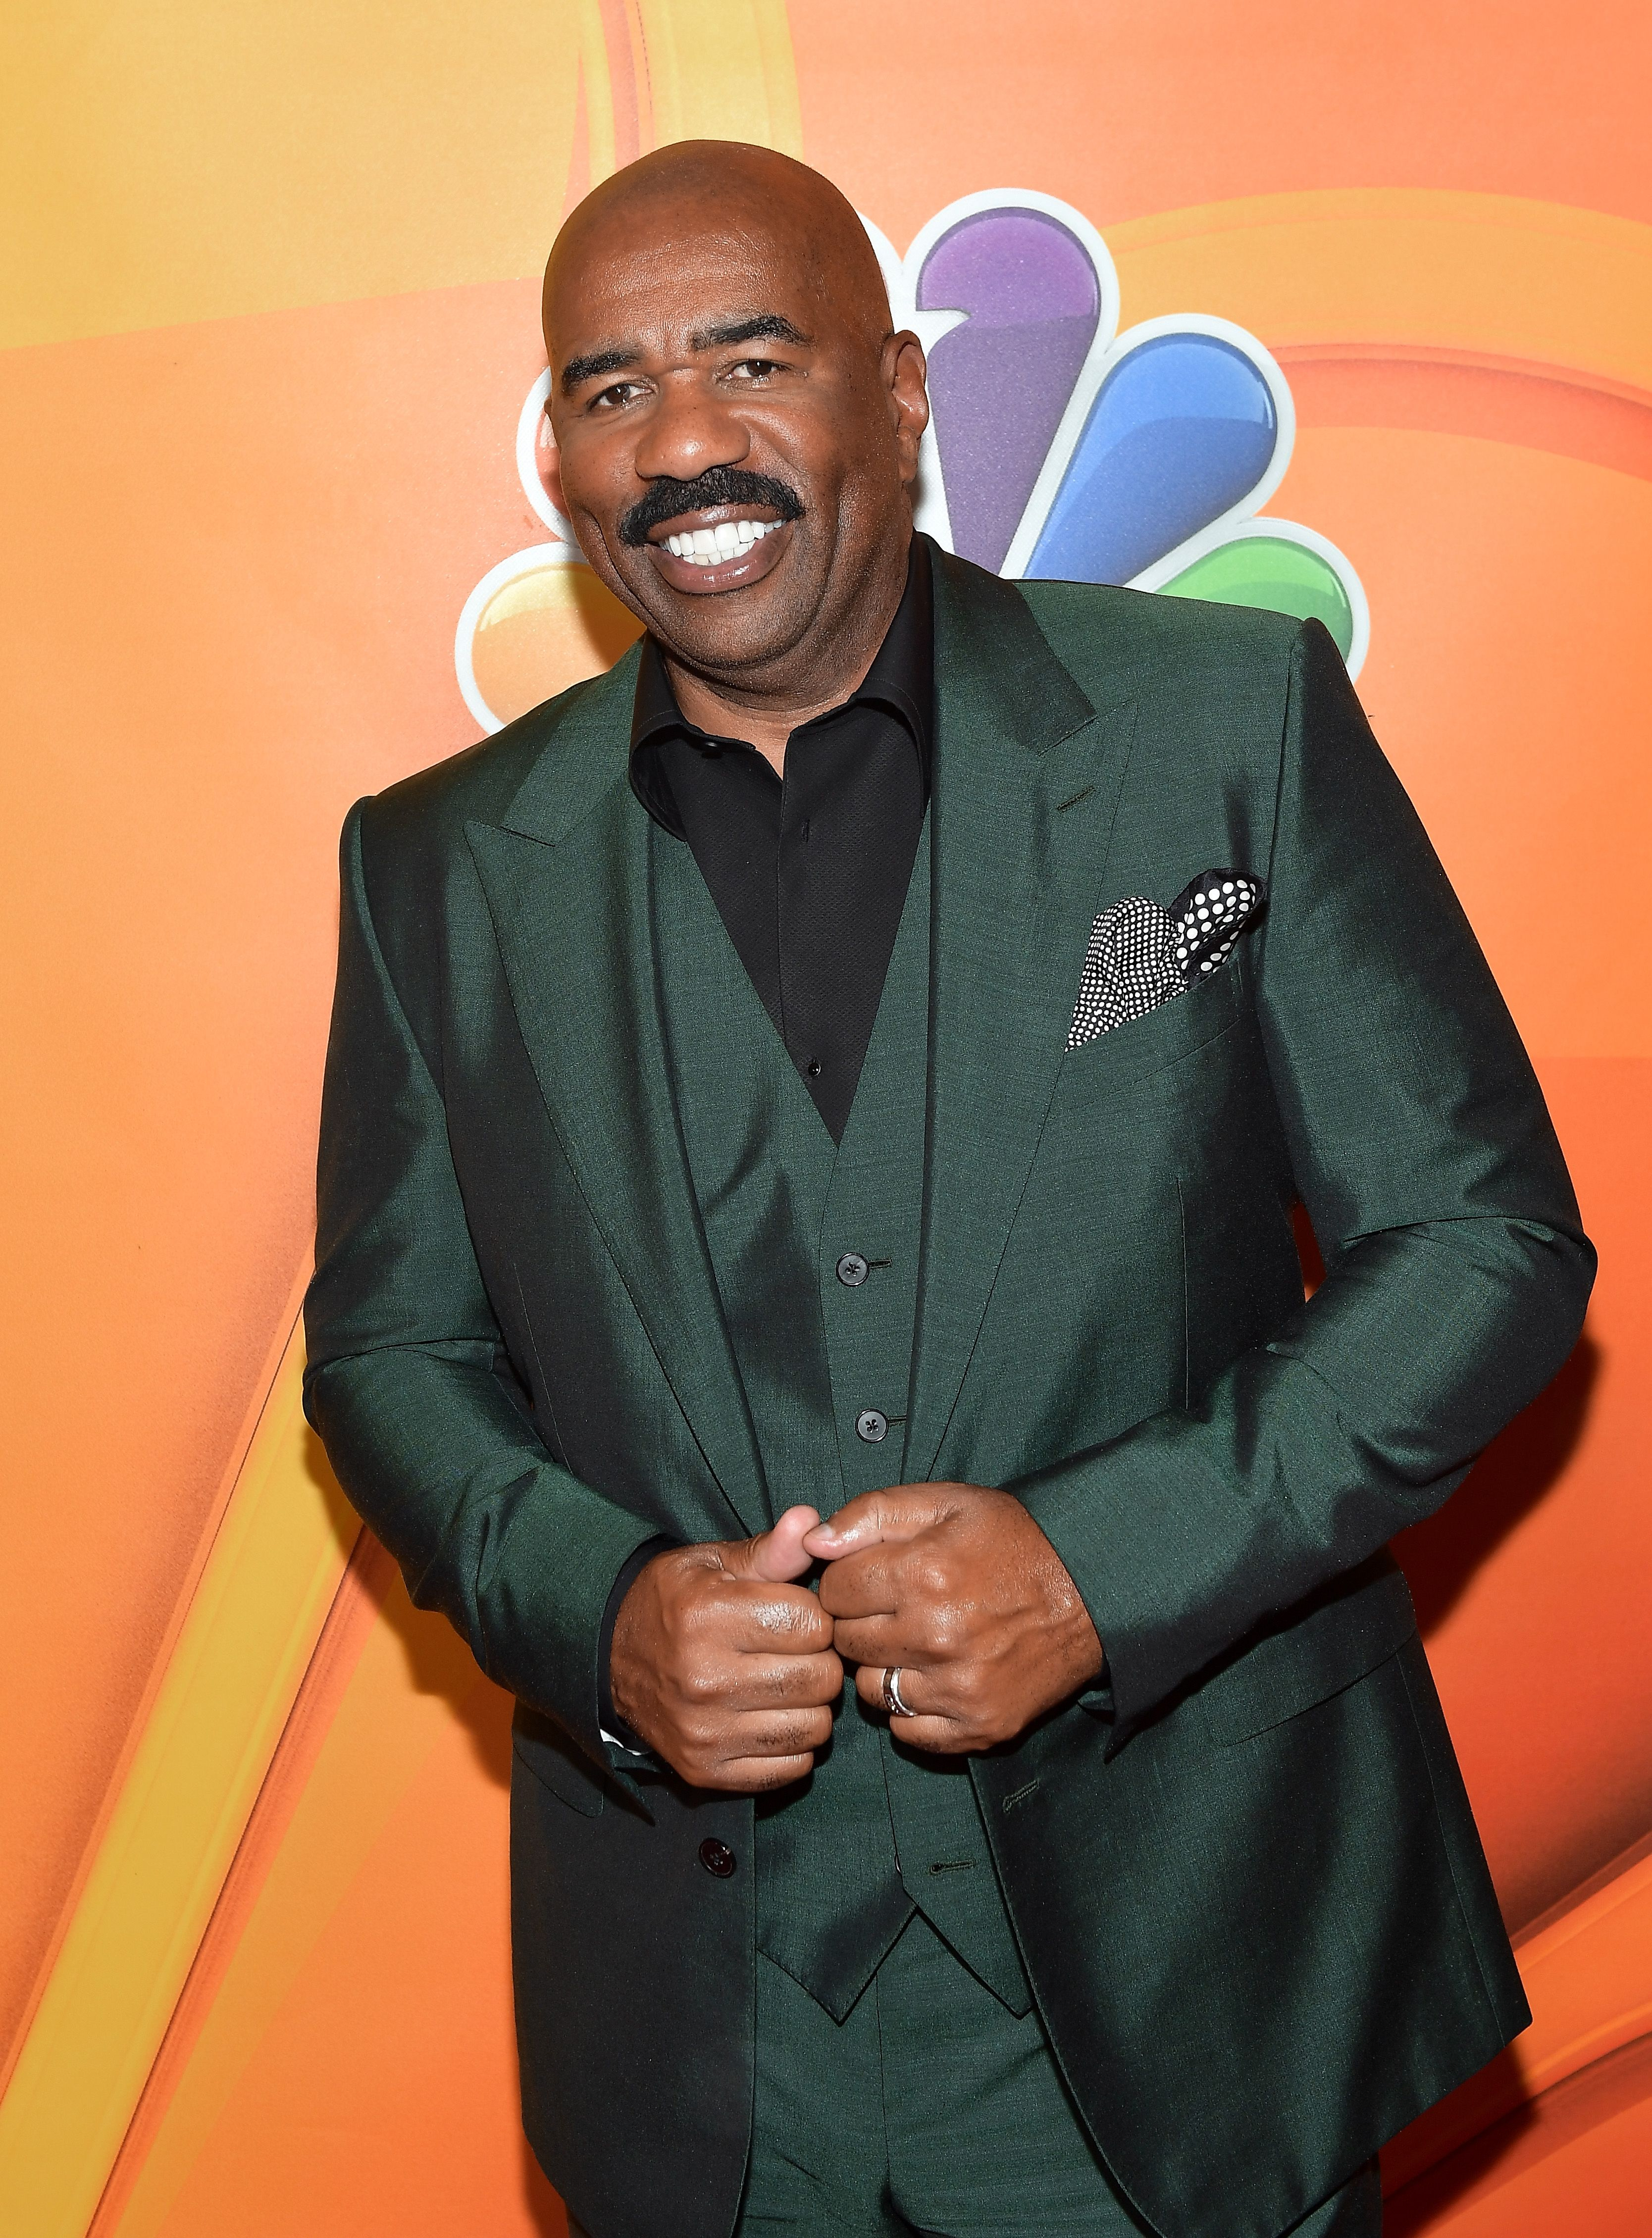 Steve Harvey at the NBCUniversal Summer TCA Press Tour in August 2017.   Source: Getty Images